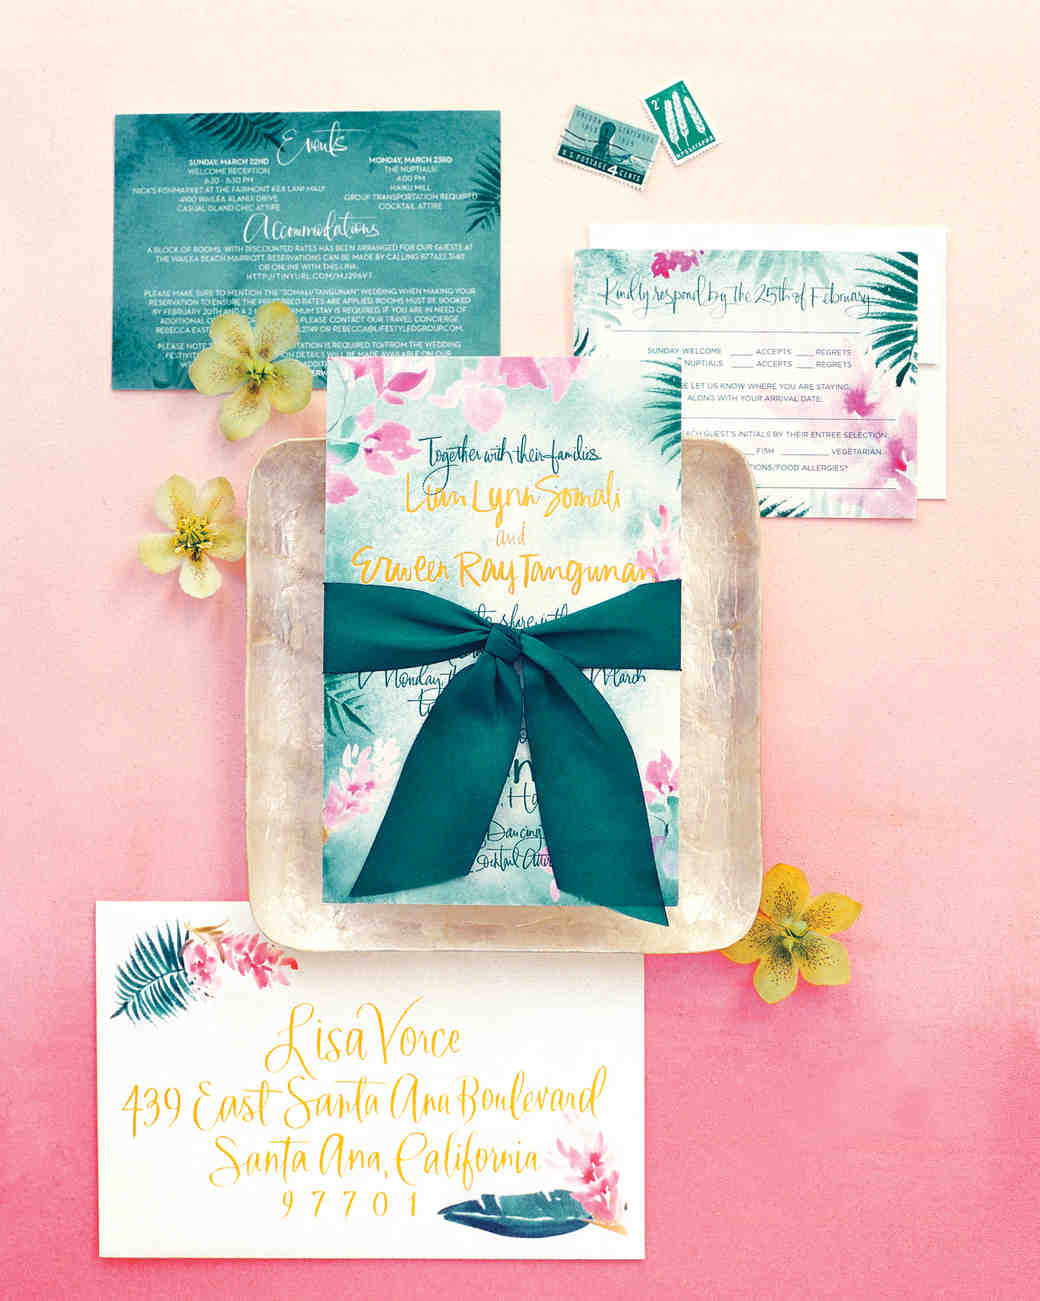 lian-erween-wedding-hawaii-invite-0001-s112268.jpg